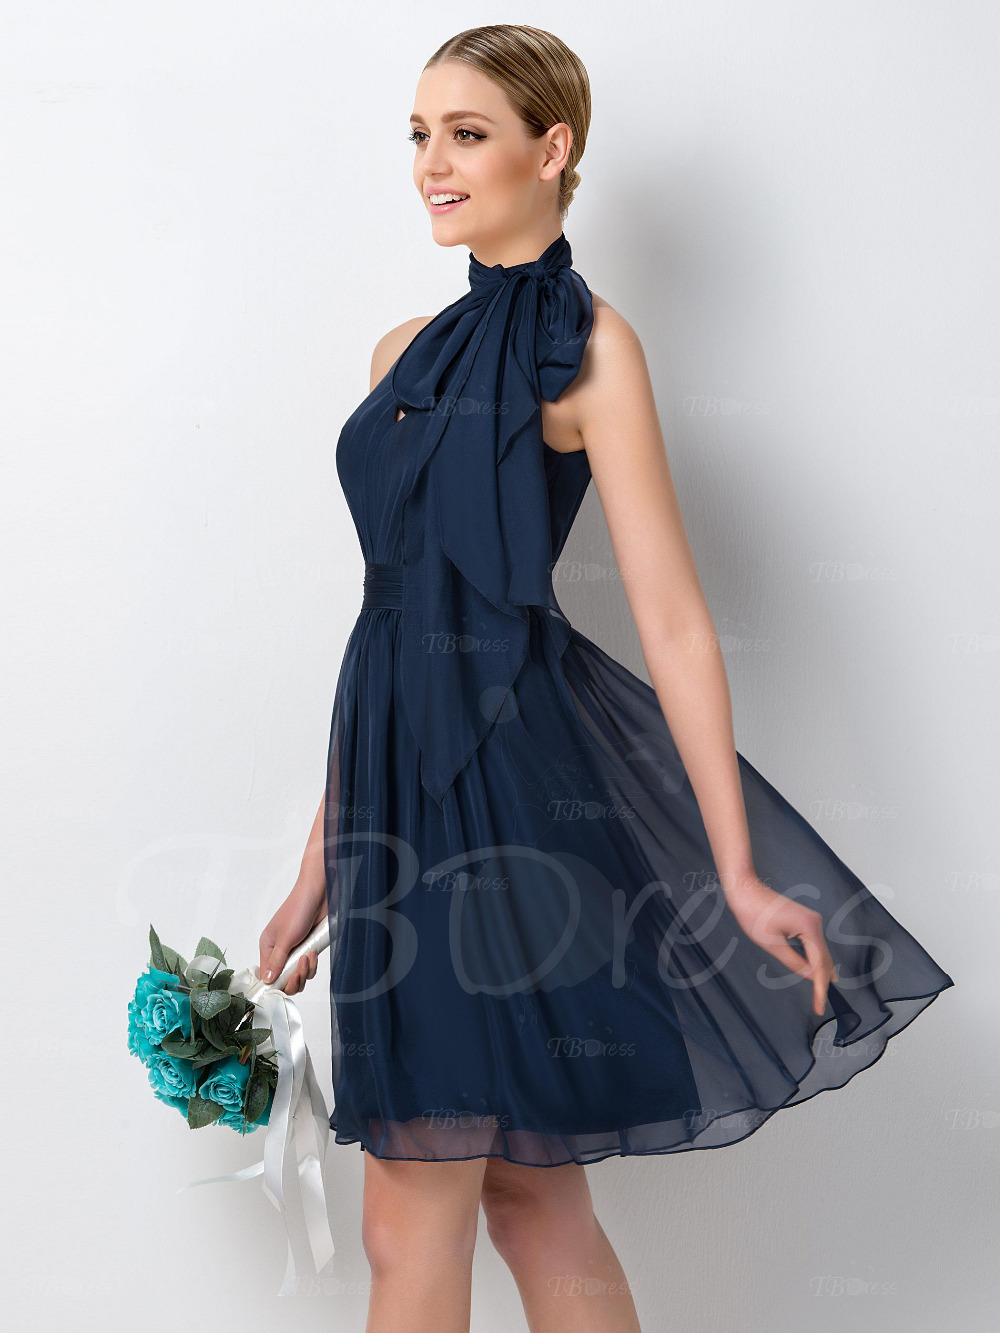 2016 new arrival halter neck chiffon bridesmaid dresses black robe 2016 new arrival halter neck chiffon bridesmaid dresses black robe demoiselle dhonneur knee length ruched short formal dress in bridesmaid dresses from ombrellifo Images